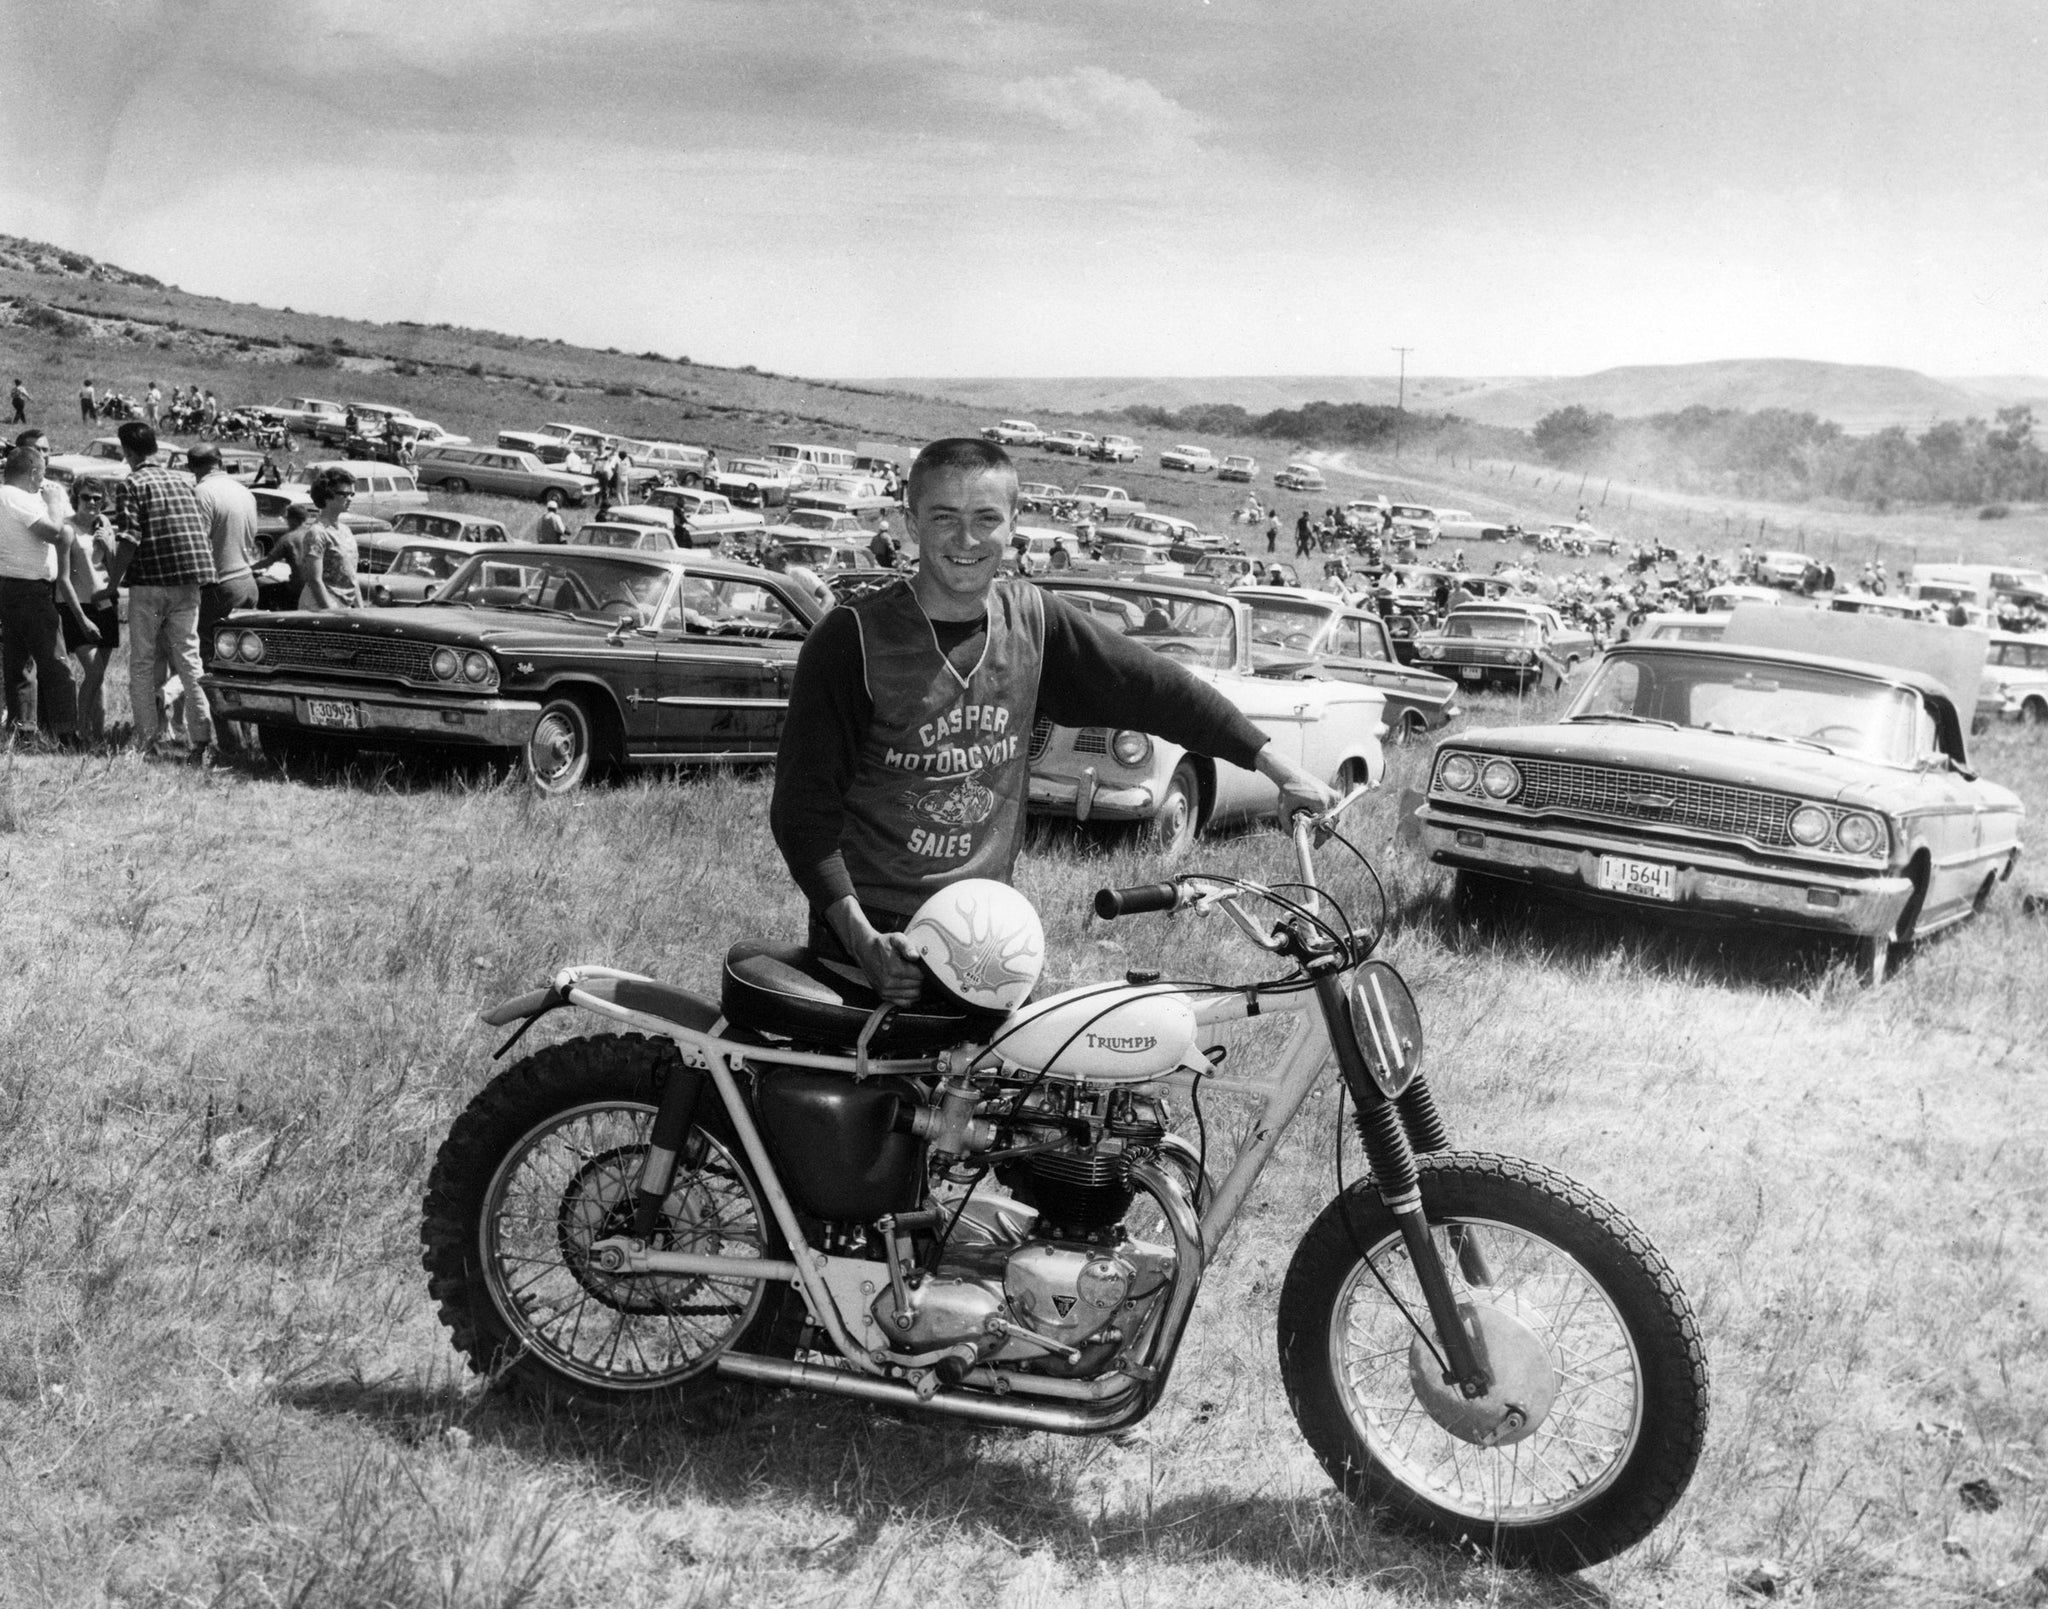 Tim Oler with his specially built Triumph dragster motorcycle he rode for Casper Motorcycle Sales at the races outside of Casper, circa 1964. -- COURTESY DEBBIE SHEDDEN